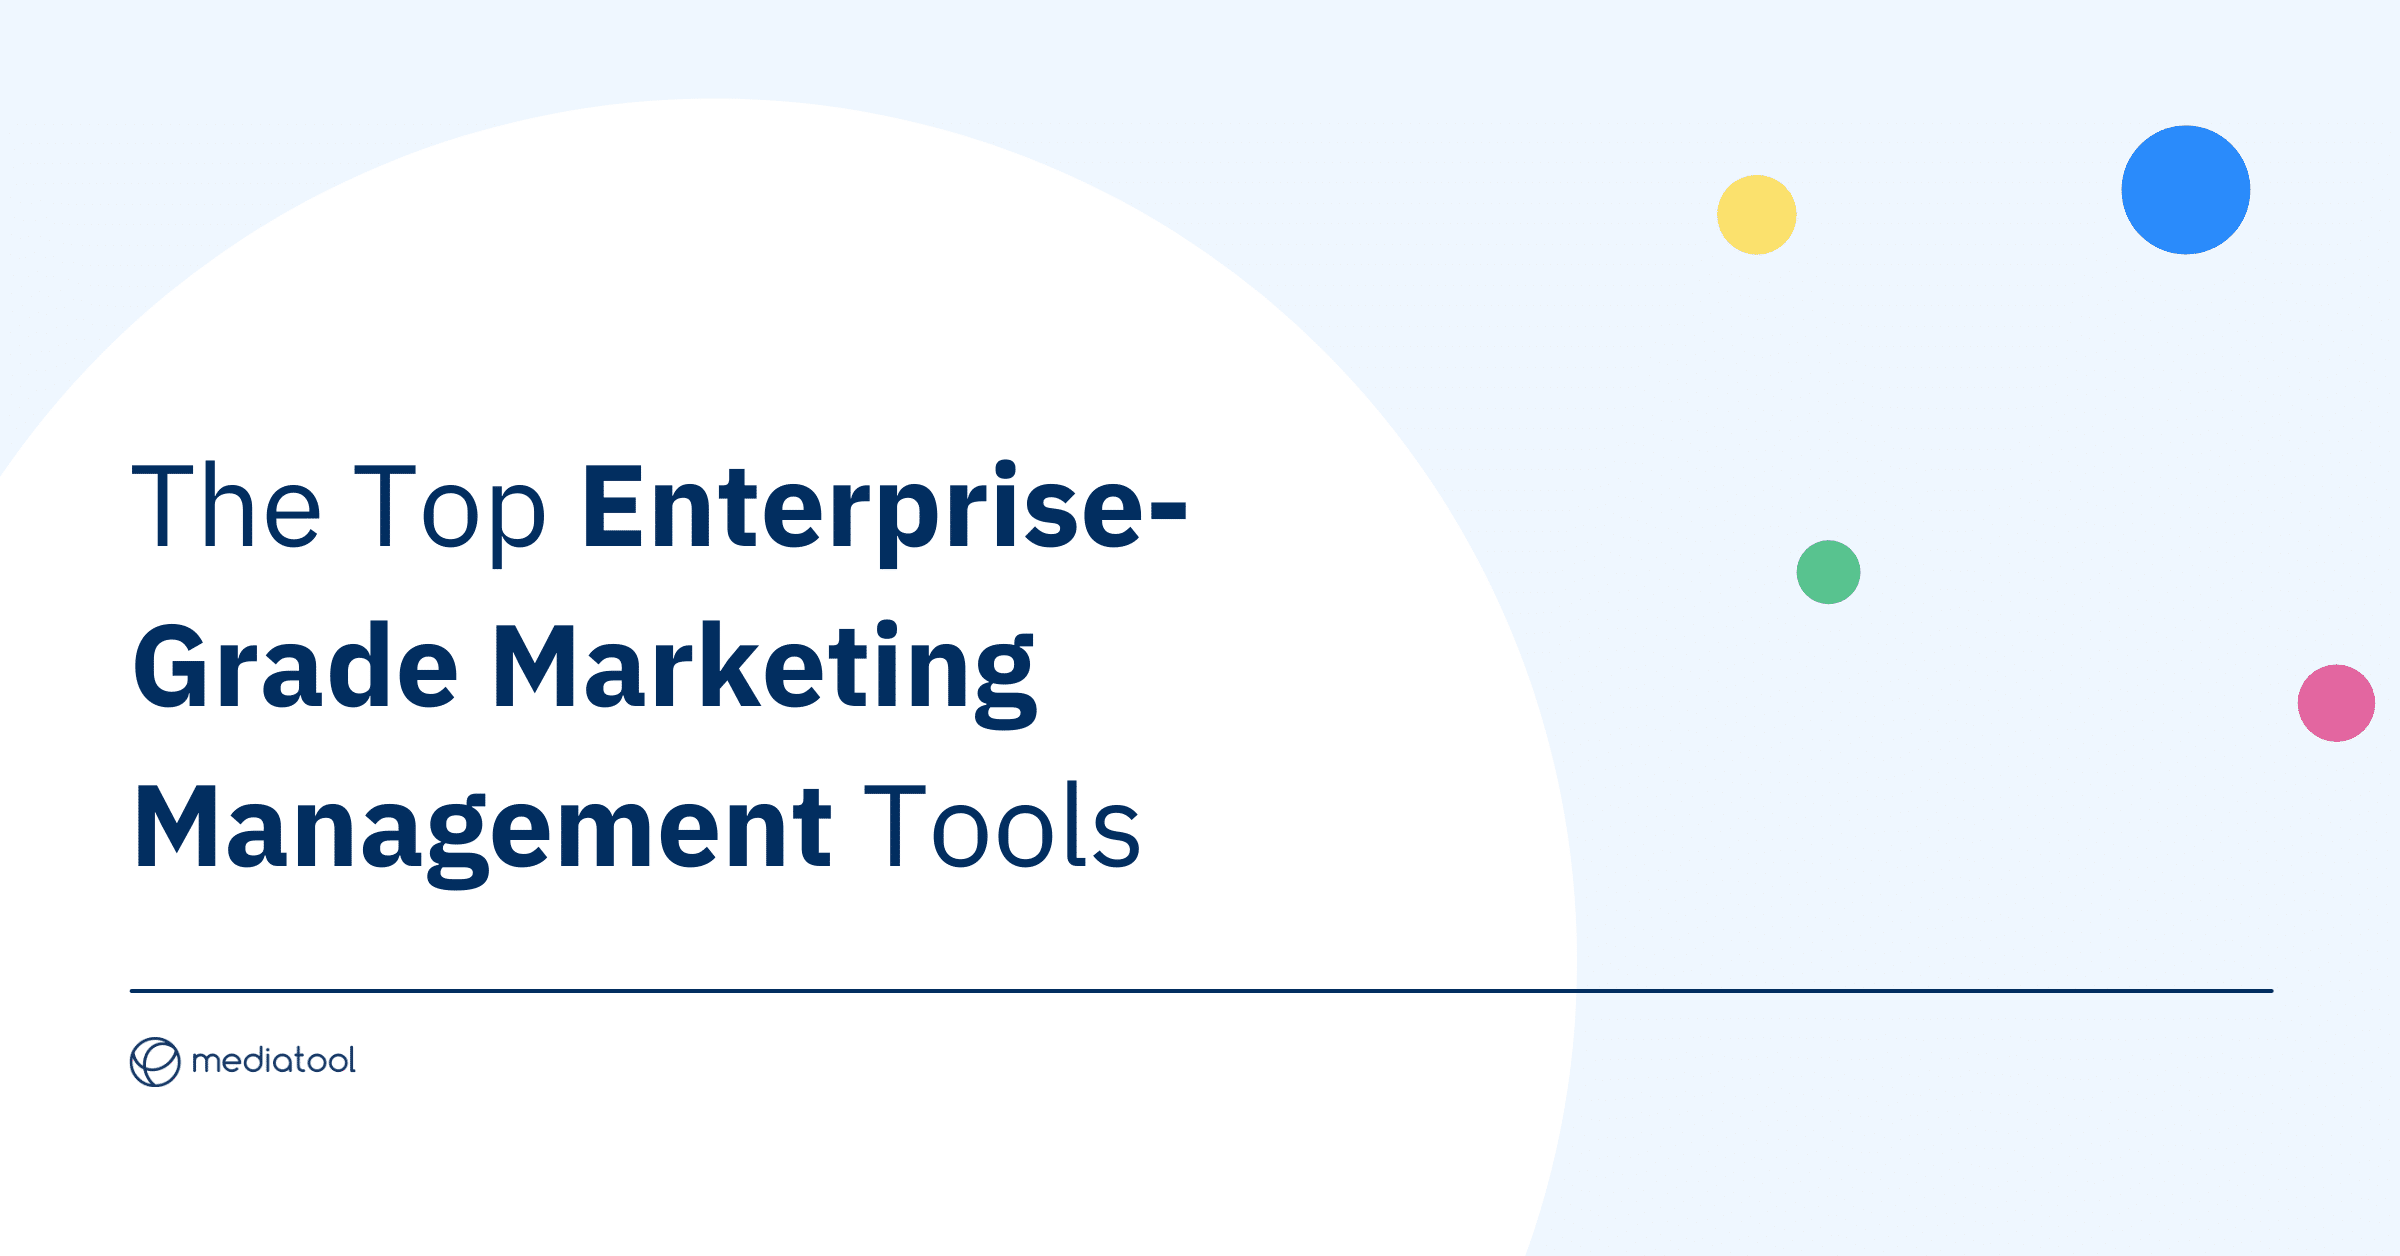 The top marketing management tools for enterprise